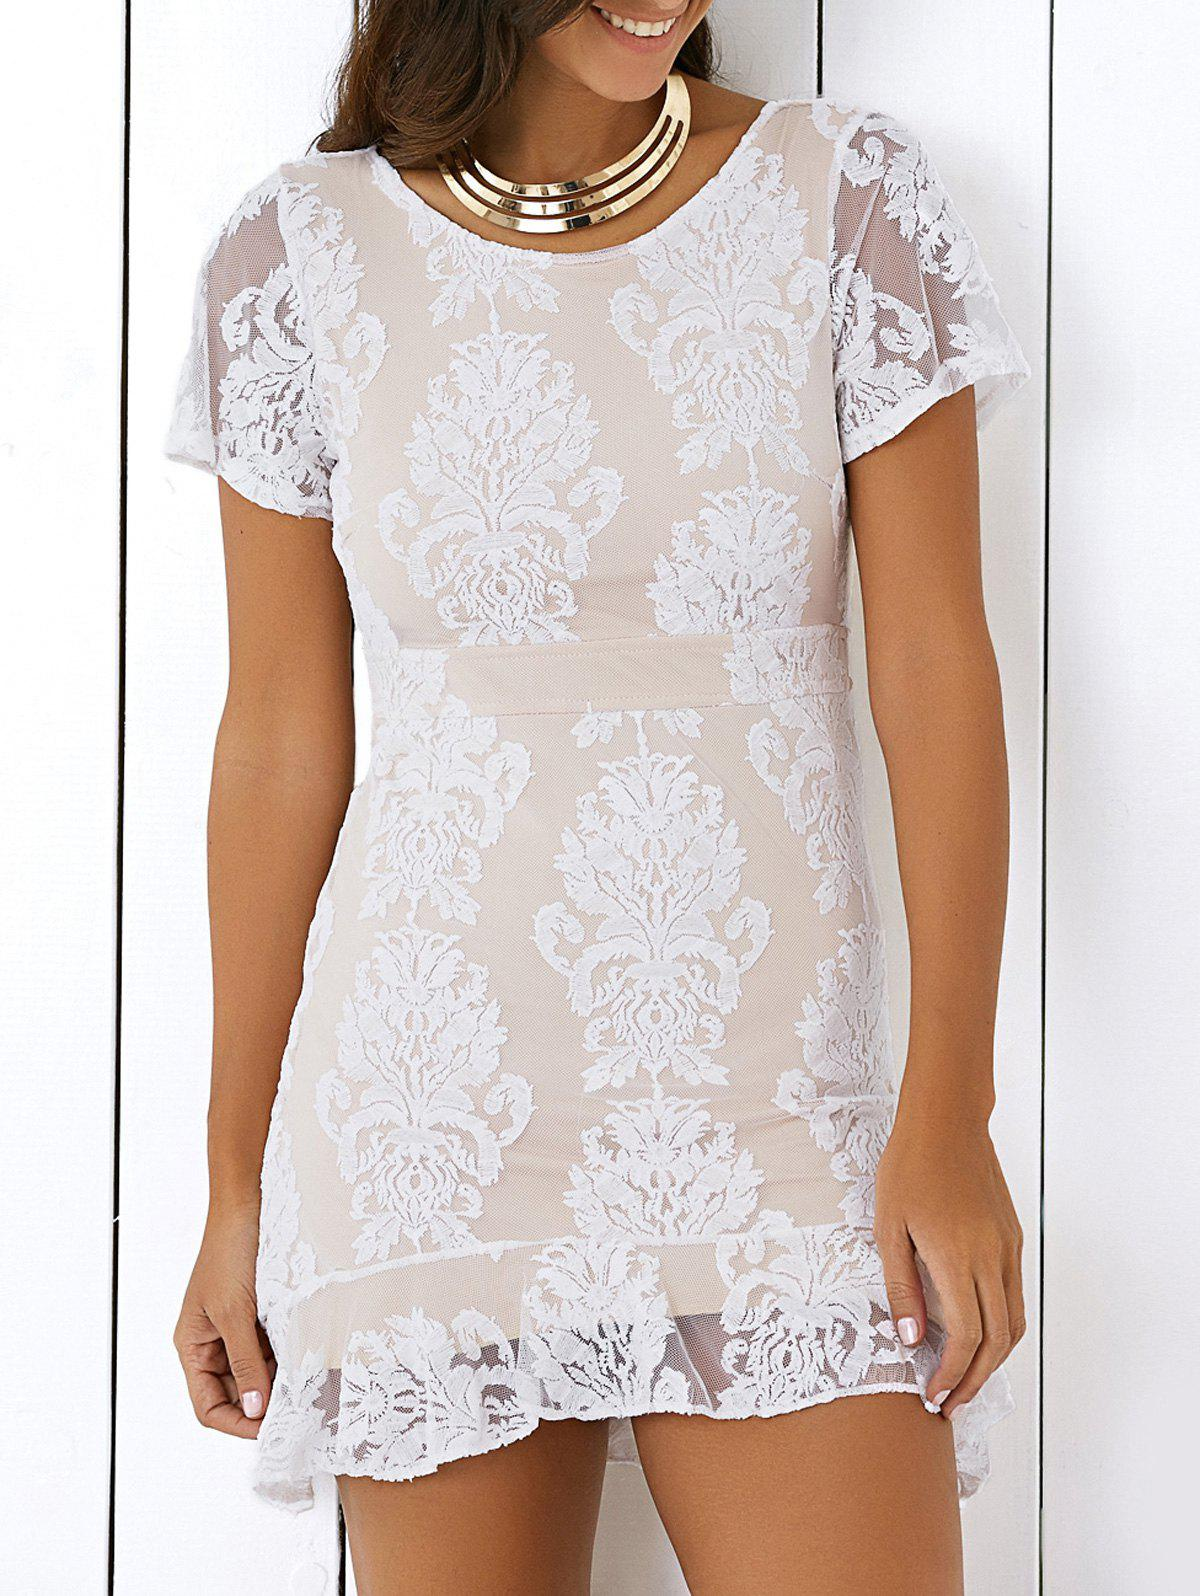 Backless Ruffled Lace Dress - OFF WHITE ONE SIZE